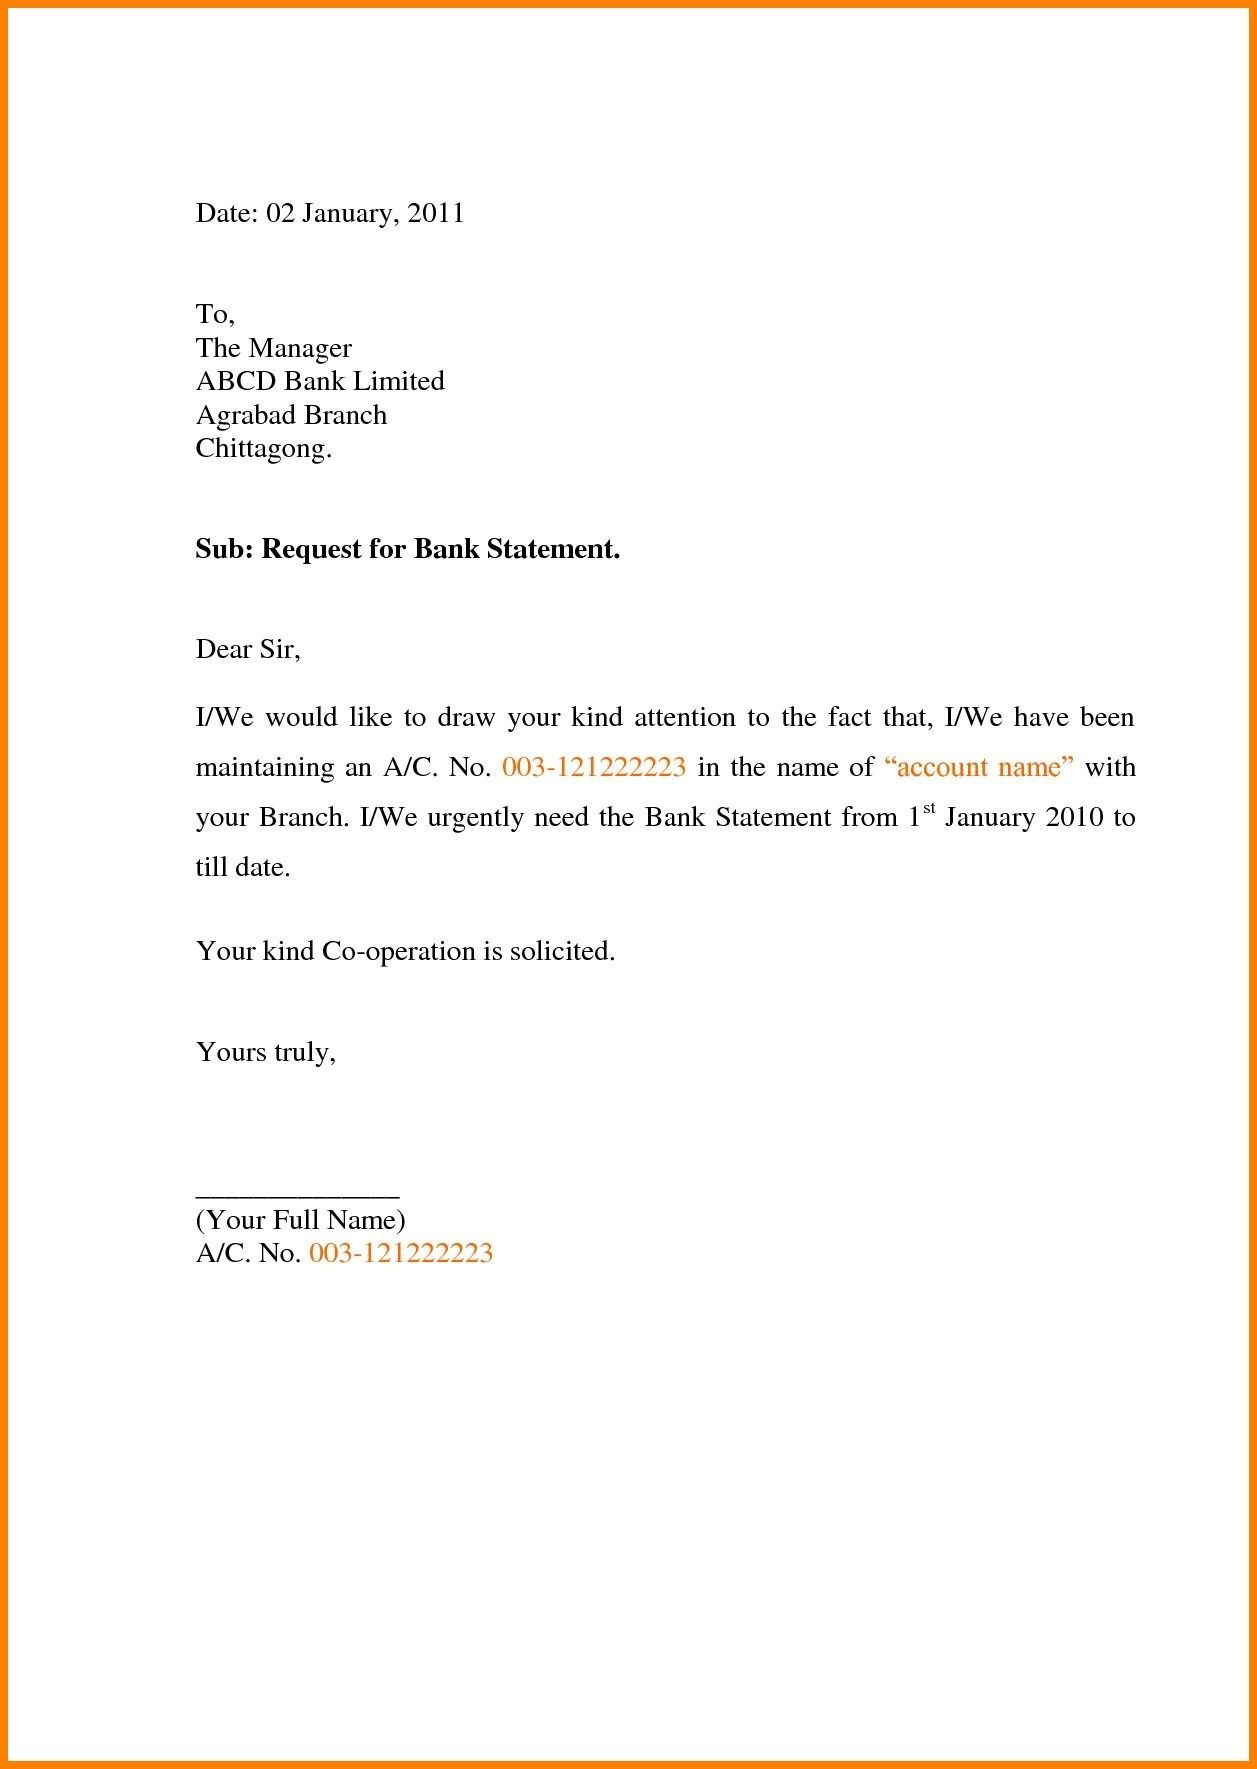 Letter Format To Bank Manager For Bank Statement Fresh Bank Statement Request Letter Format In Word Application Letters Bank Statement Letter Writing Format